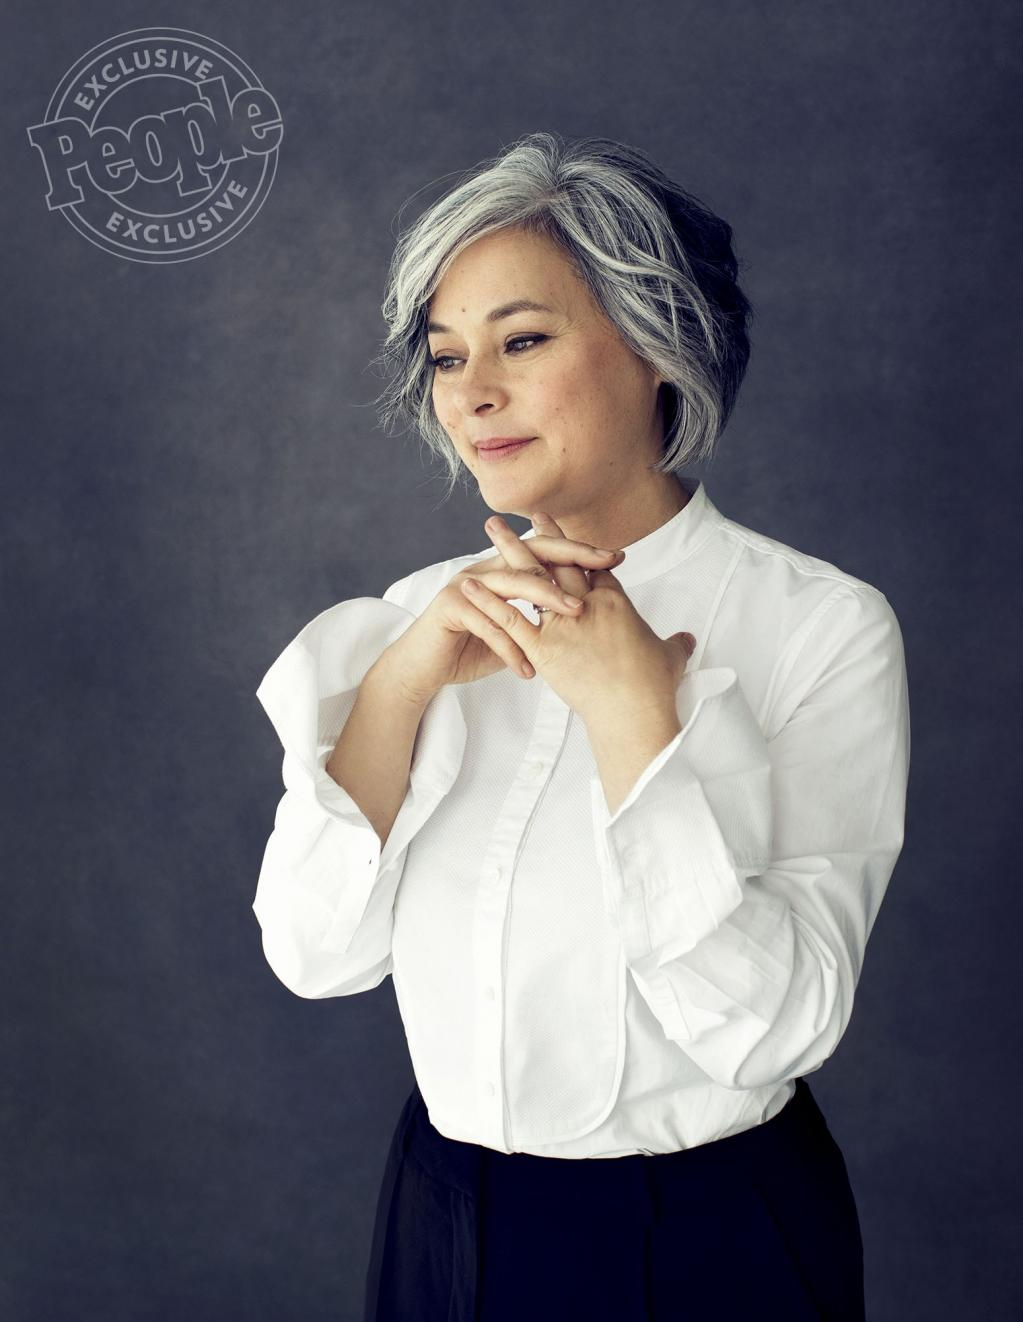 Meg Tilly Hated Being Hit On in Hollywood: Why Her Quiet Life Now (on an Island!) Couldn't Be More Different